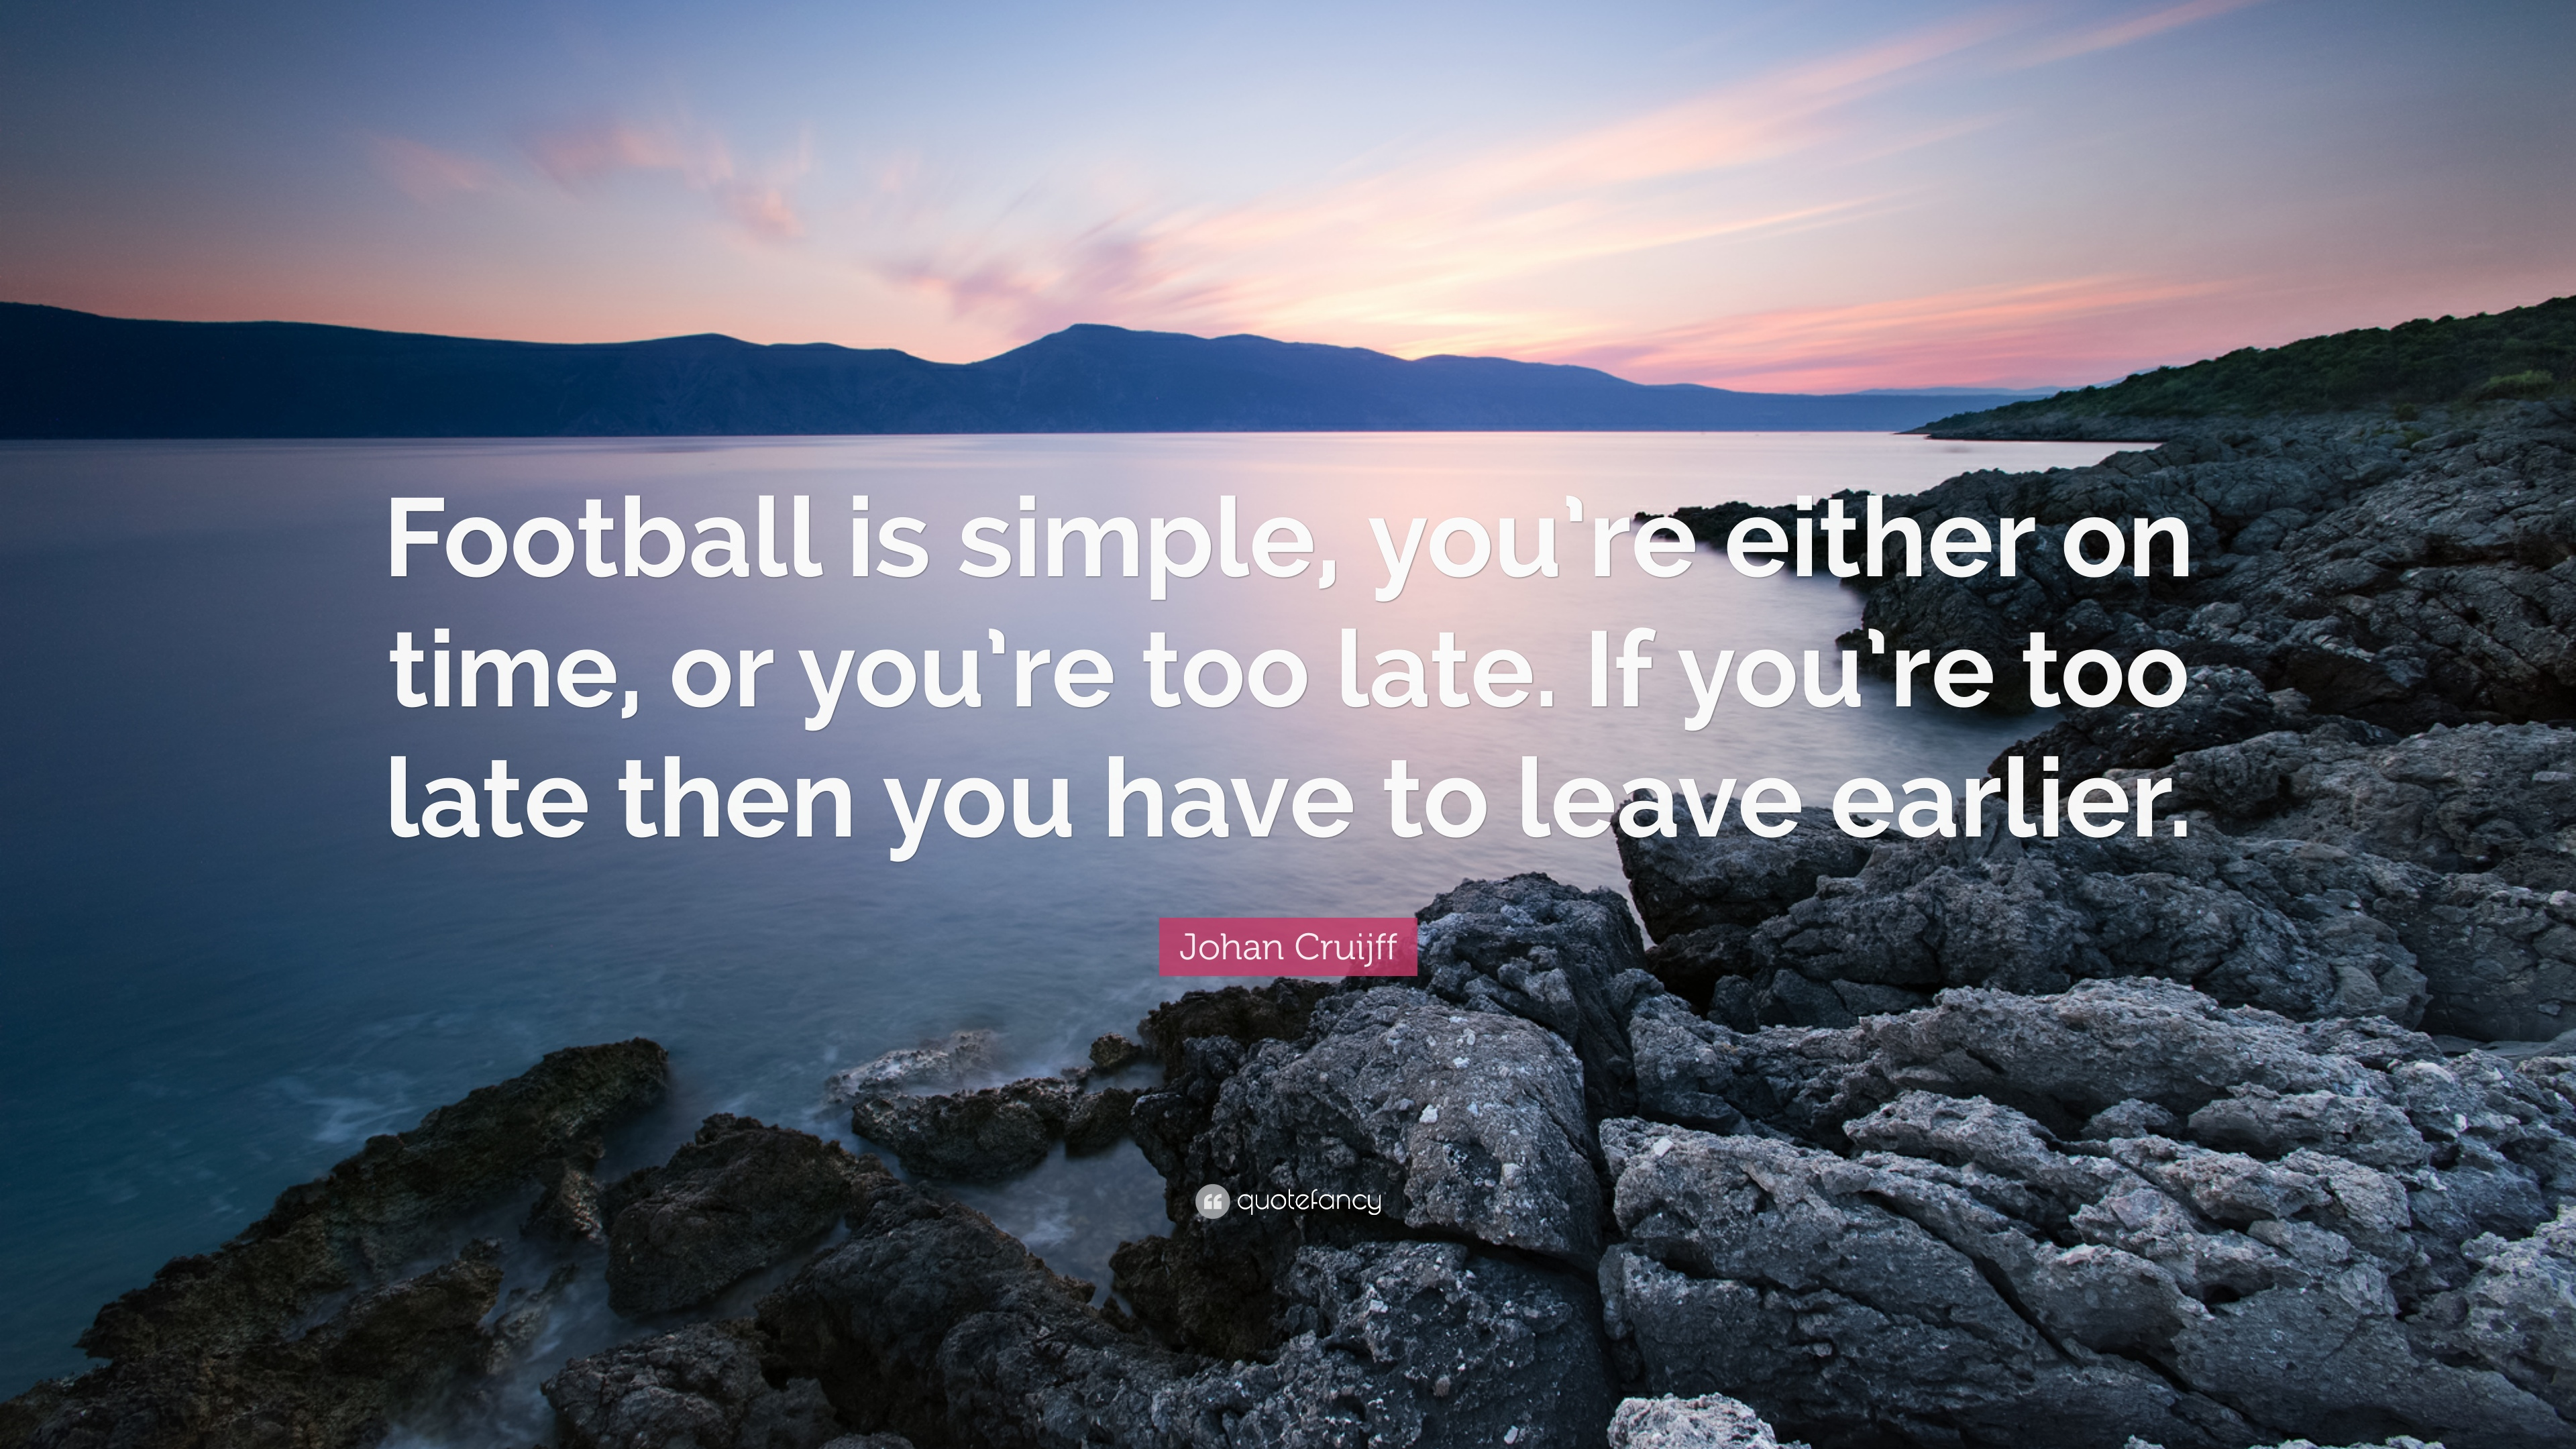 Johan Cruijff Quote Football Is Simple Youre Either On Time Or